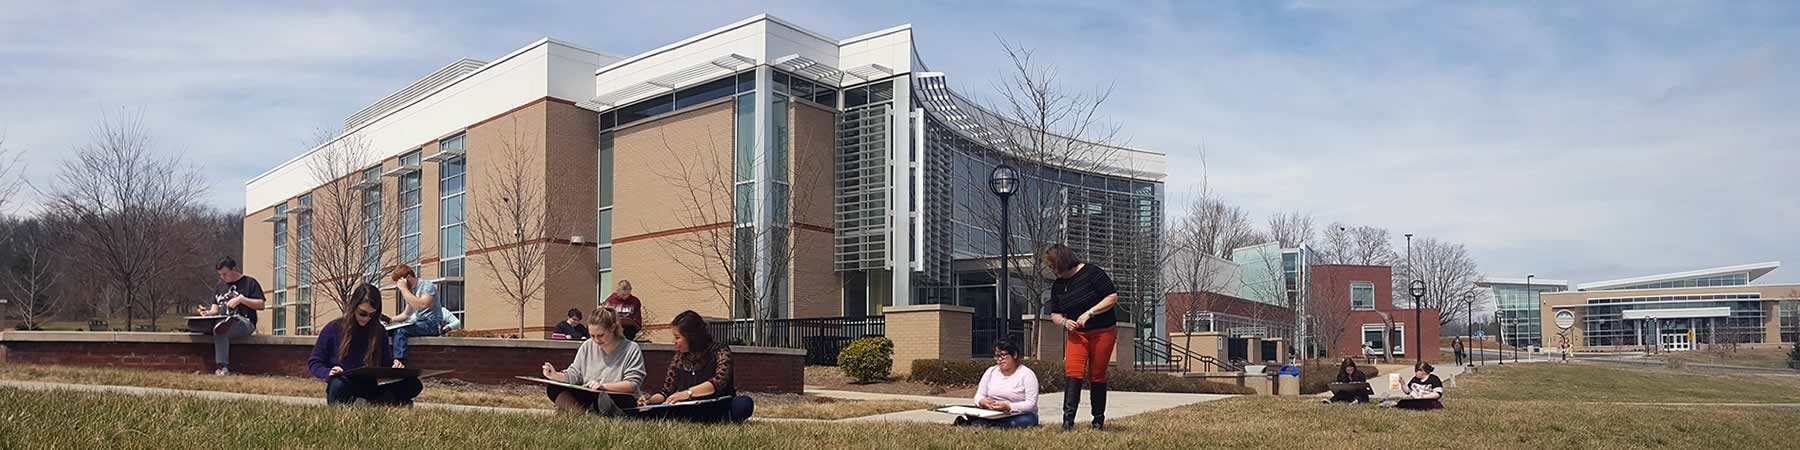 BRCC Campus: Spring Art Class Outside